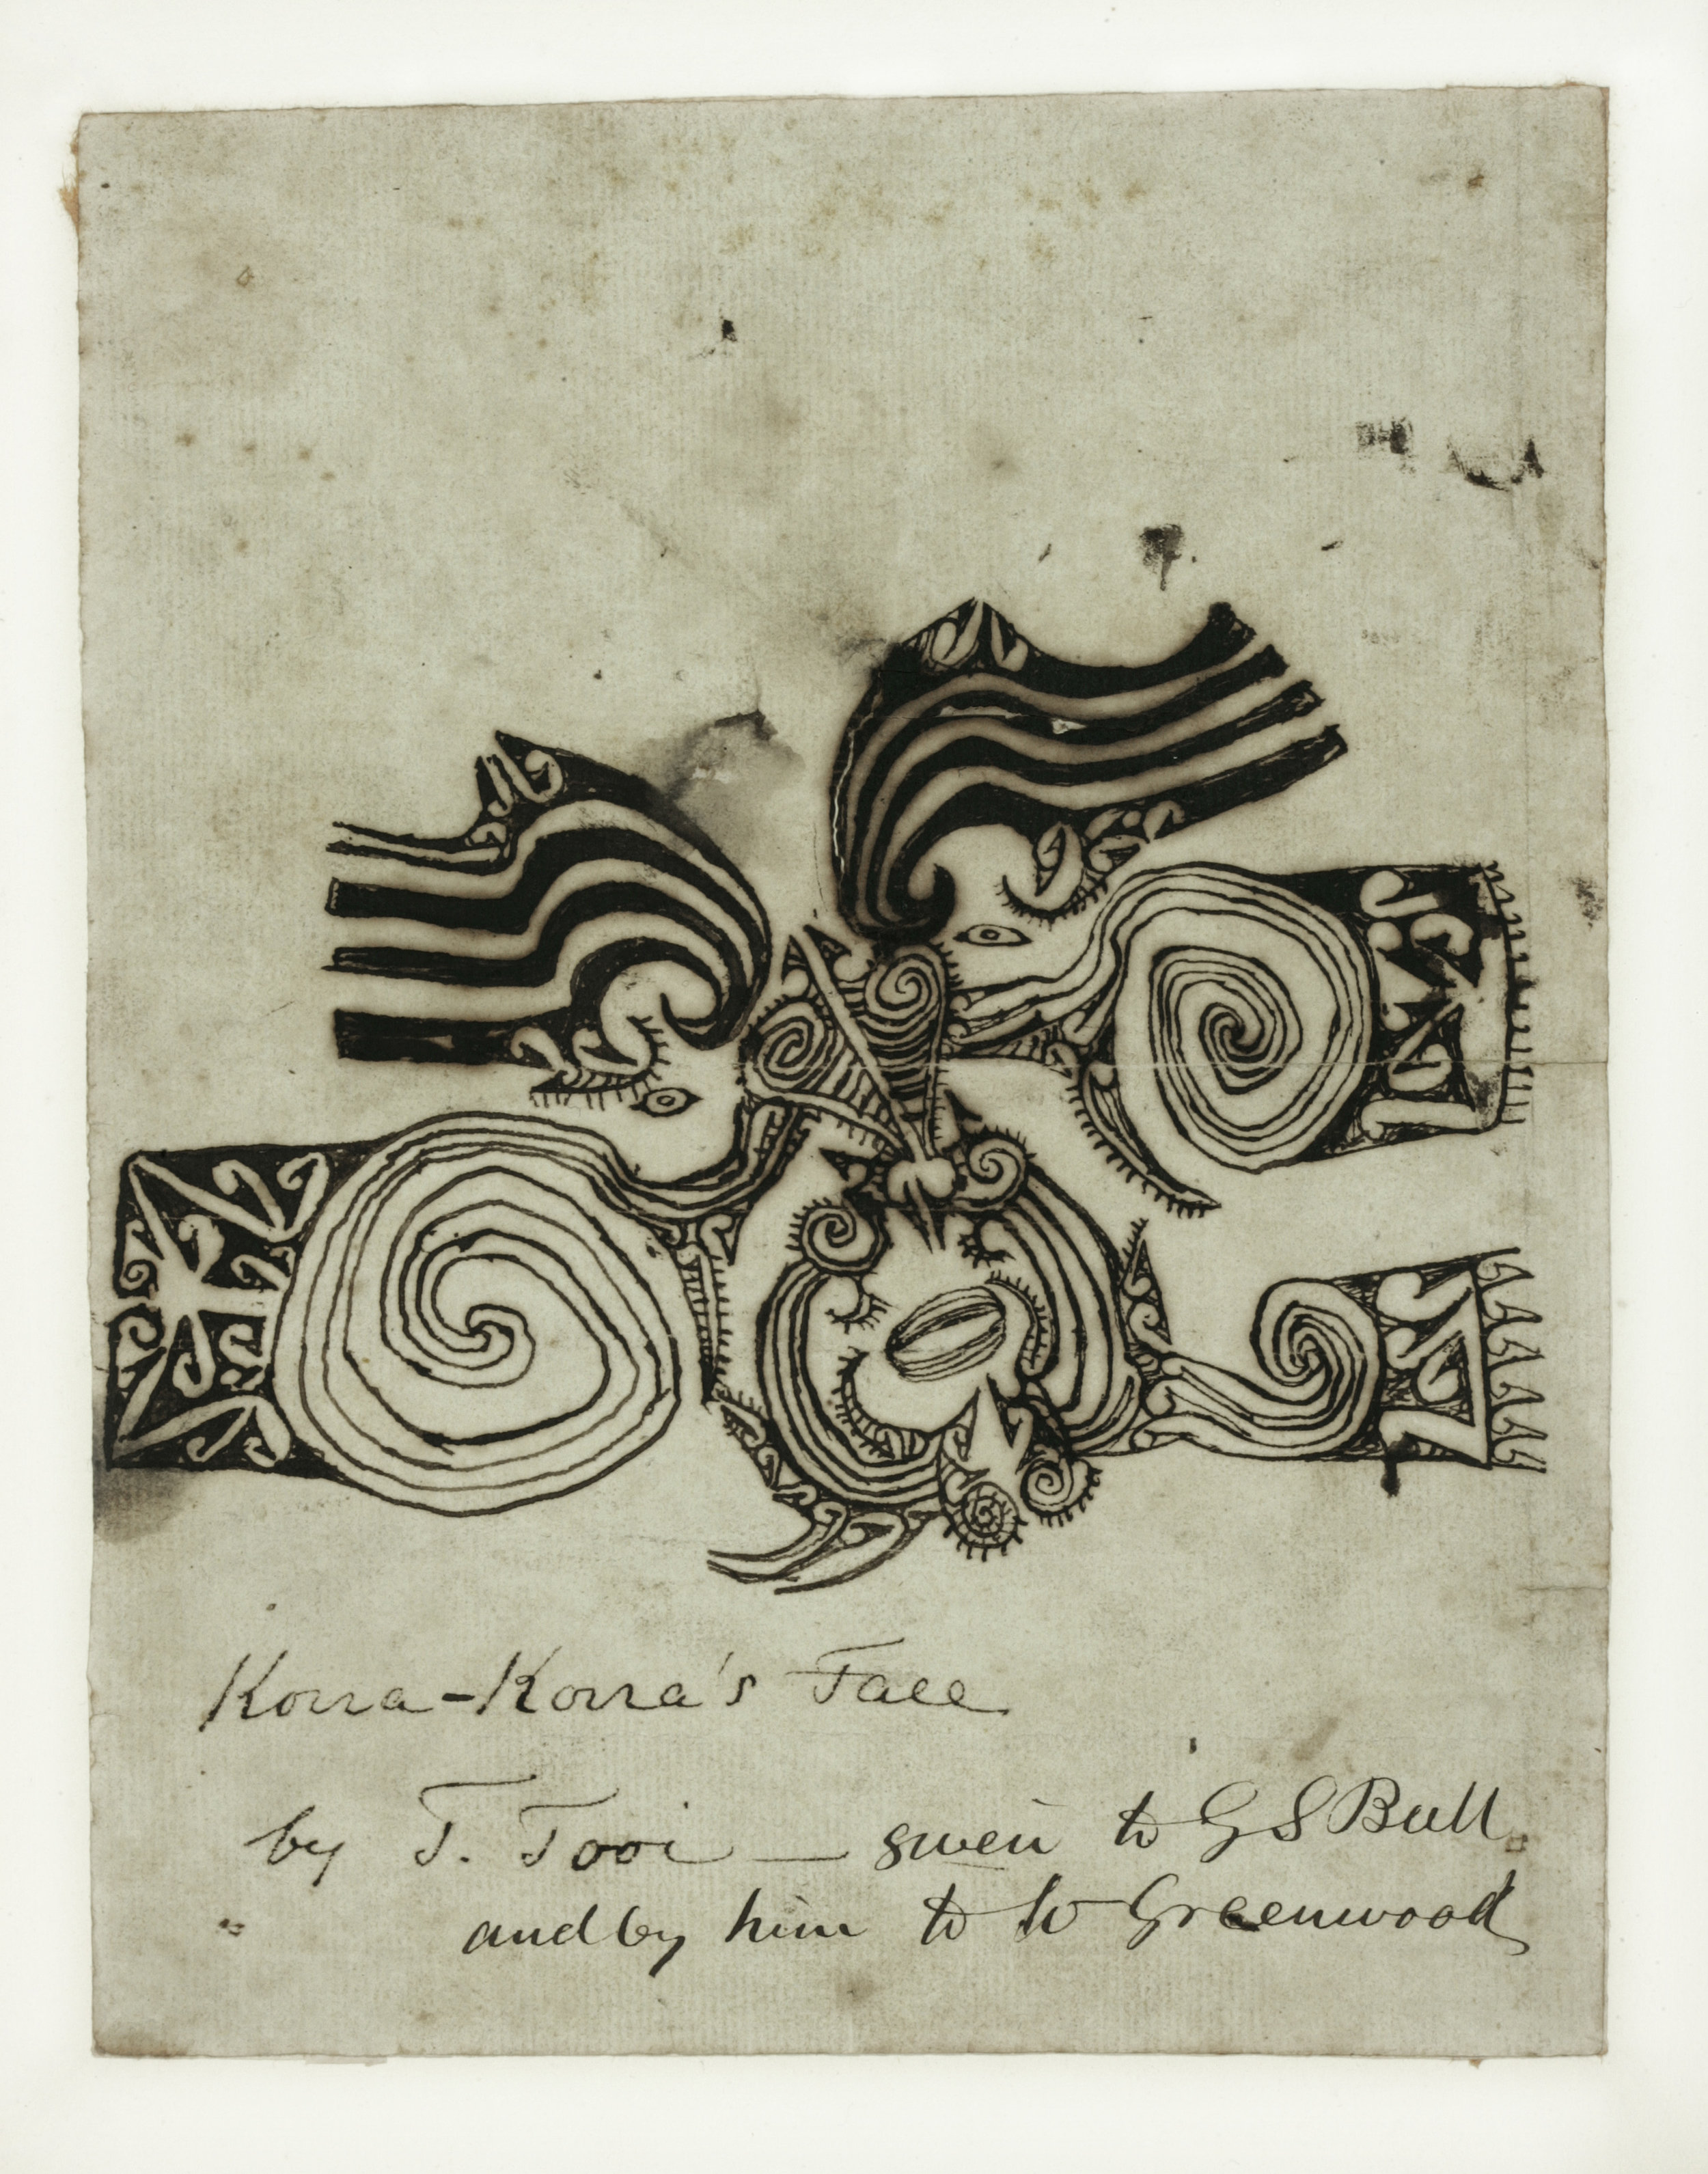 Tooi [Tuai], Drawing of Korokoro's moko, 1818. Paper, 30 x 50 cm. Sir George Grey Special Collections, Auckland Libraries. (PHOTO: Royal Academy of Arts & Auckland Libraries)